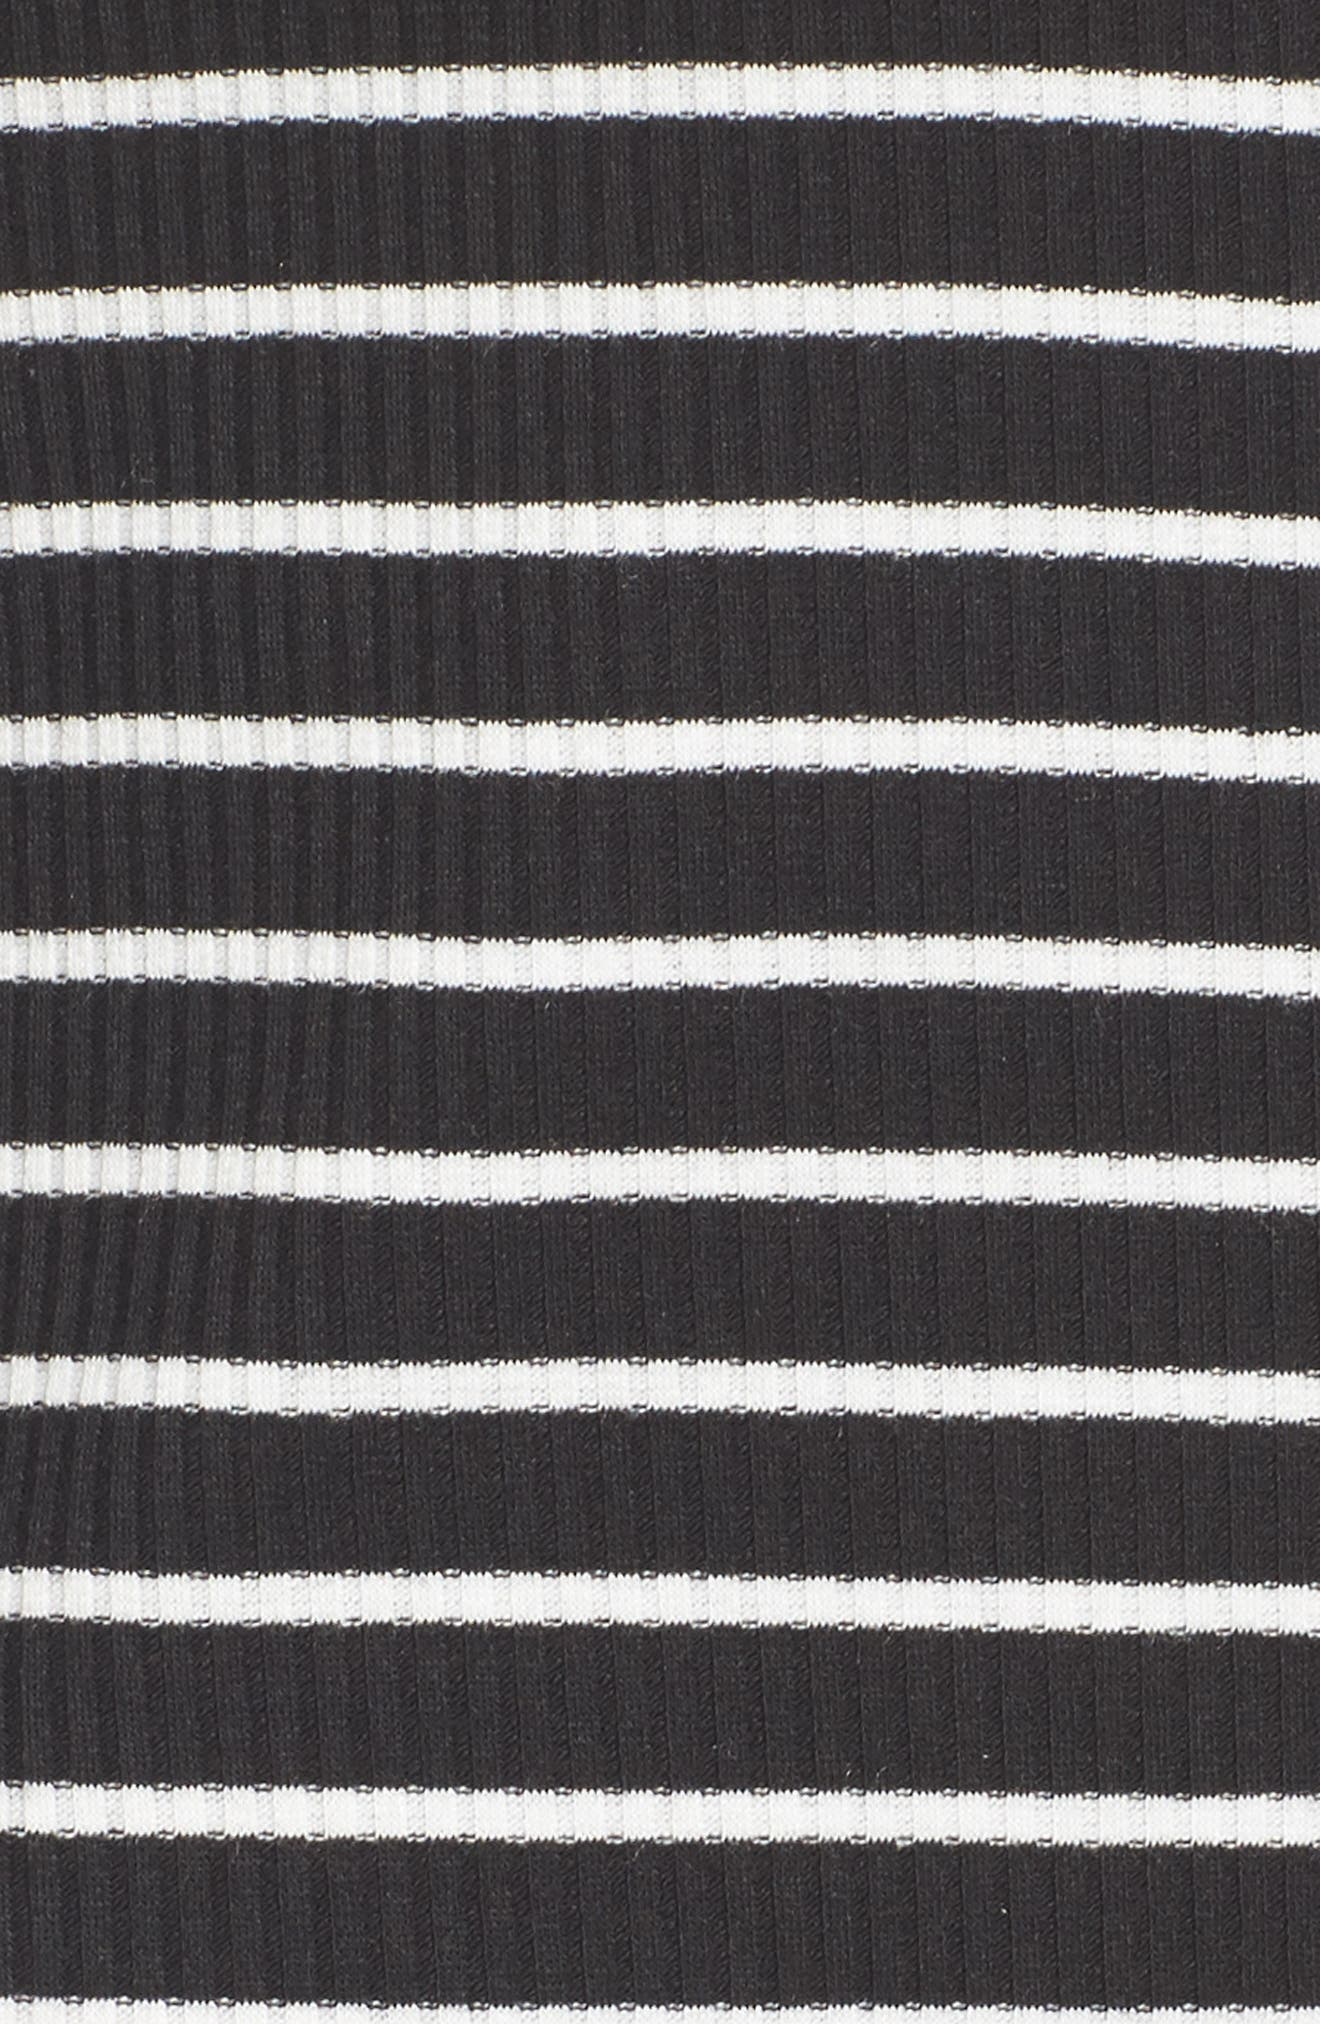 Stripe Off the Shoulder Top,                             Alternate thumbnail 5, color,                             Blk/ Wht Stripe